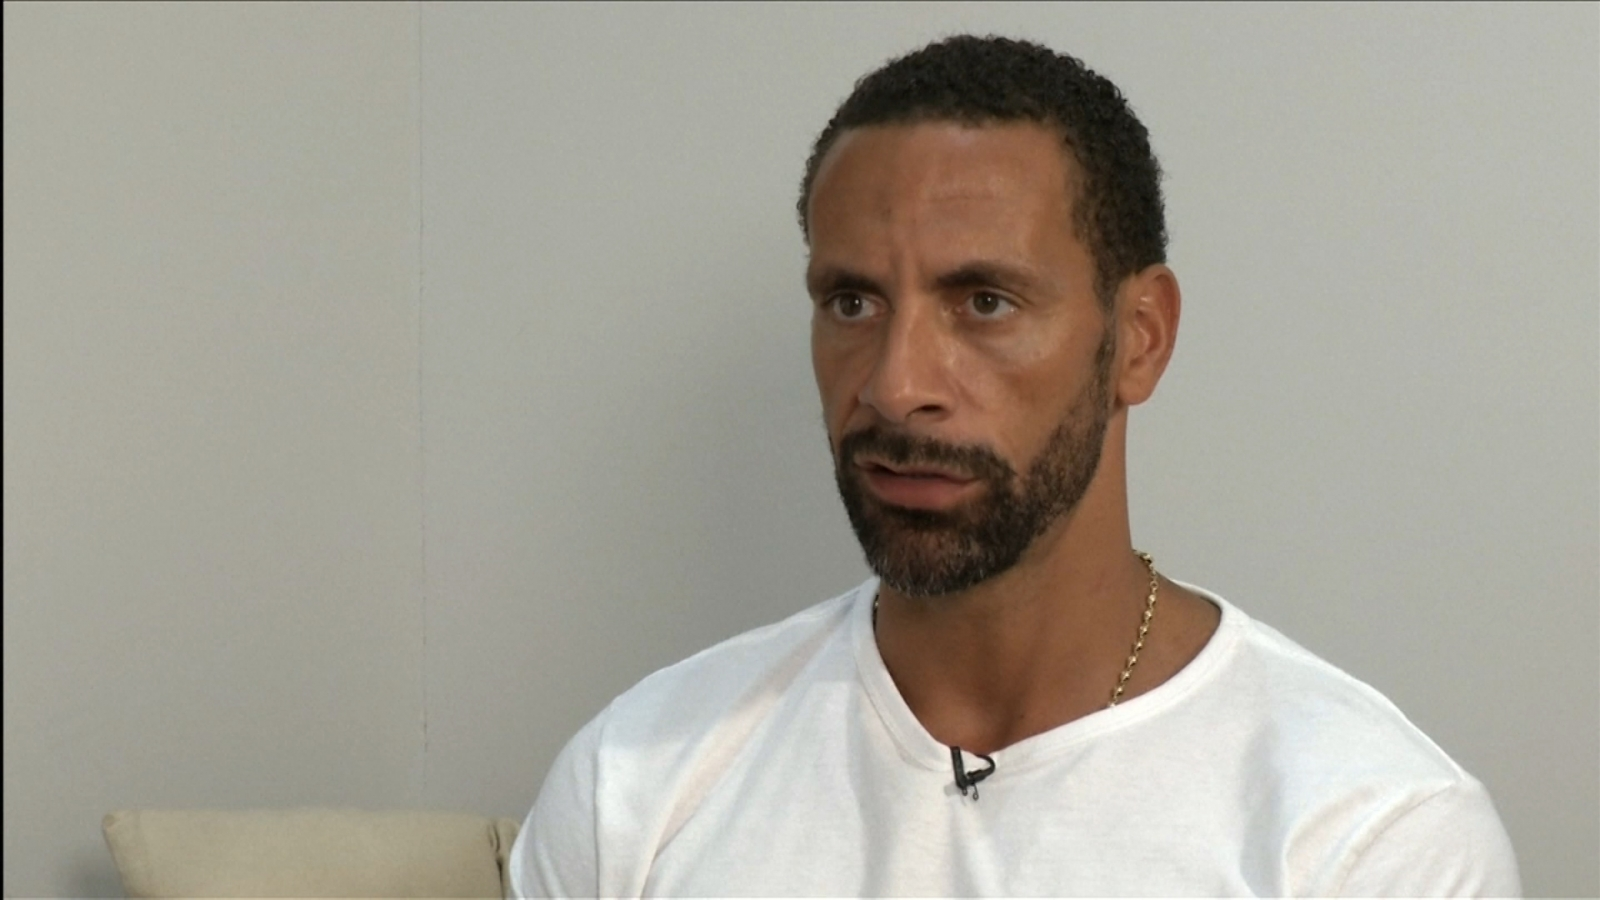 Rio Ferdinand says Cristiano Ronaldo returning to Manchester United is 'the stuff of dreams'